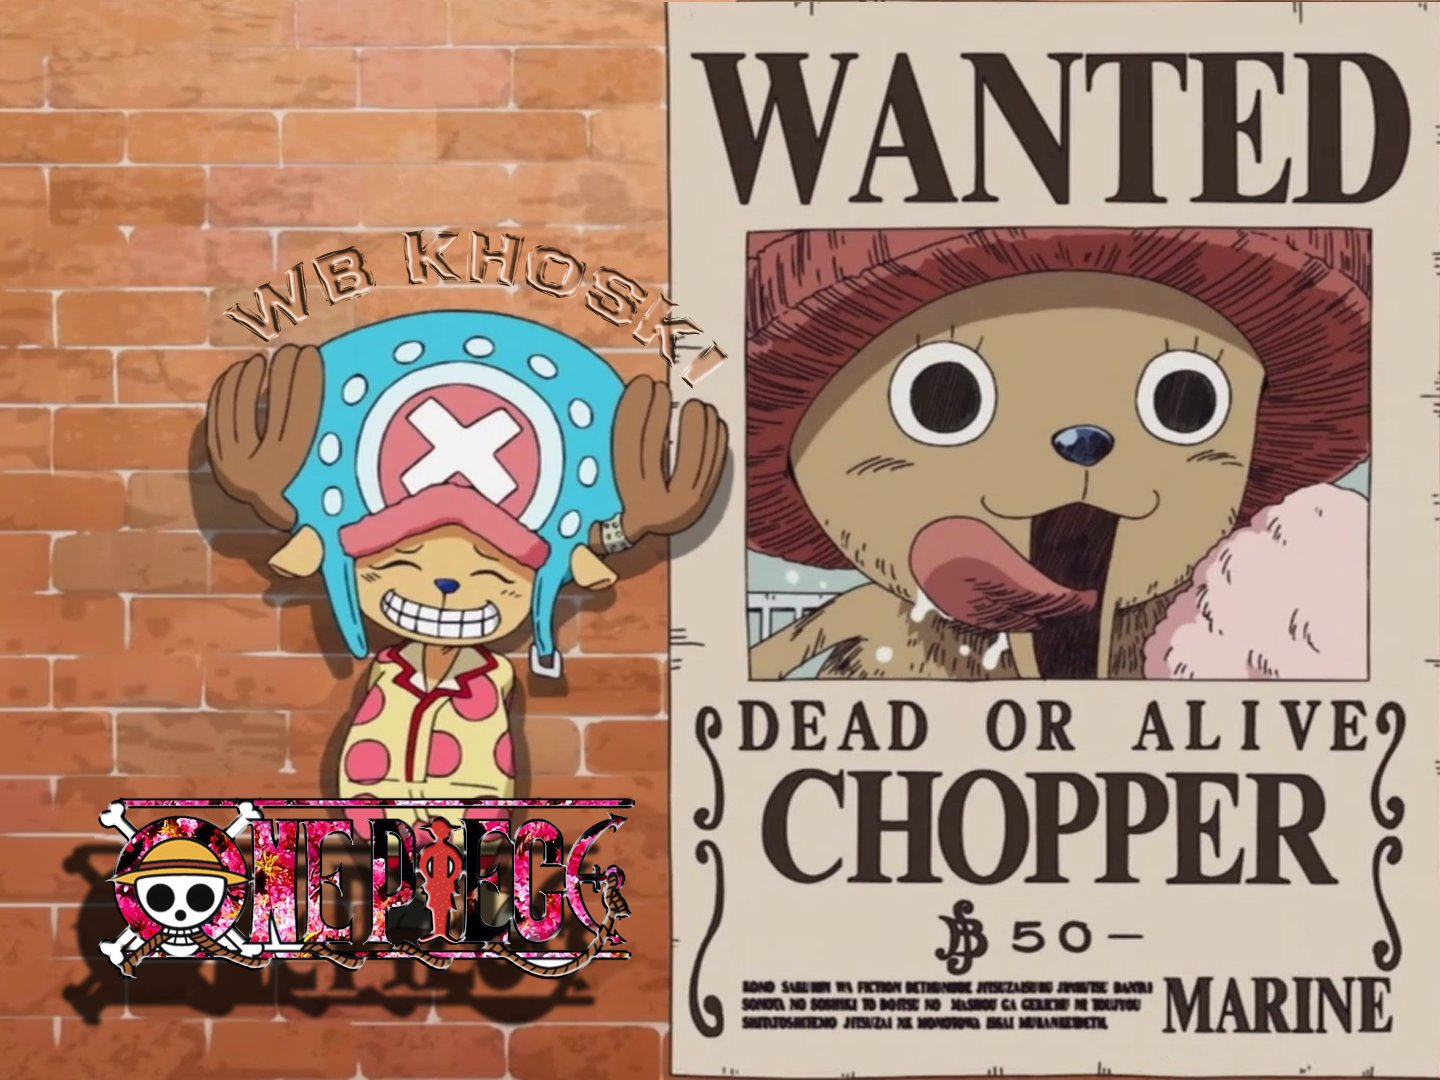 Dr Tony Tony Chopper Wanted 50 Beri Bounty By Wb Khoski Wallpaper